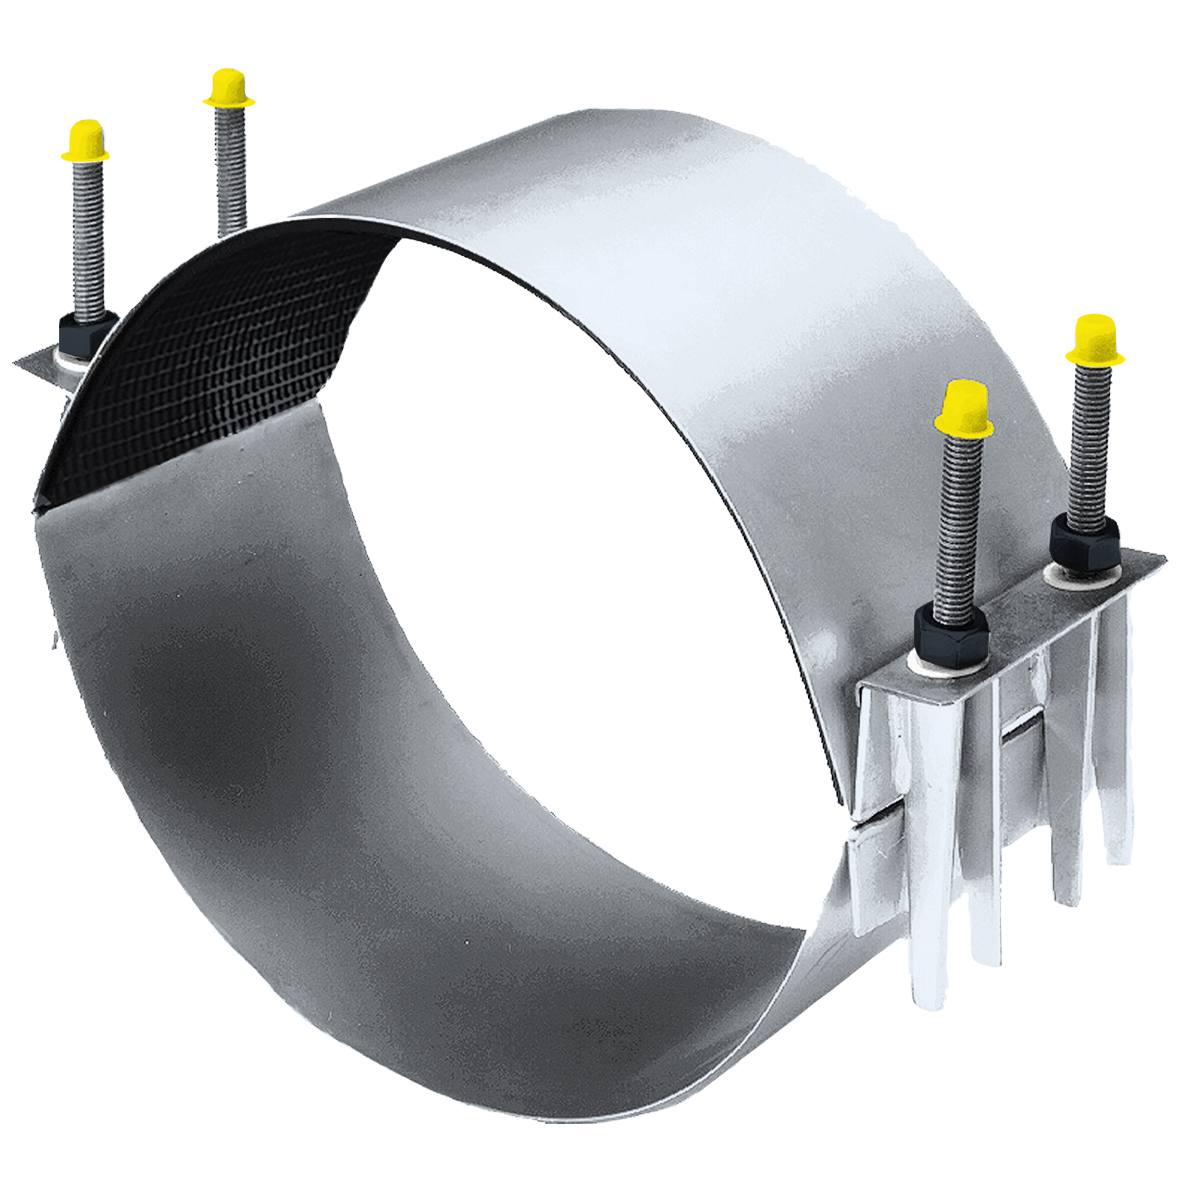 CC - Two-section stainless steel repair clamp.Nominal Sizes10 - 30 inchesWorking PressureUp to 150 psiPipe CompatibilitySteel, cast iron, plastic and asbestos cement pipe